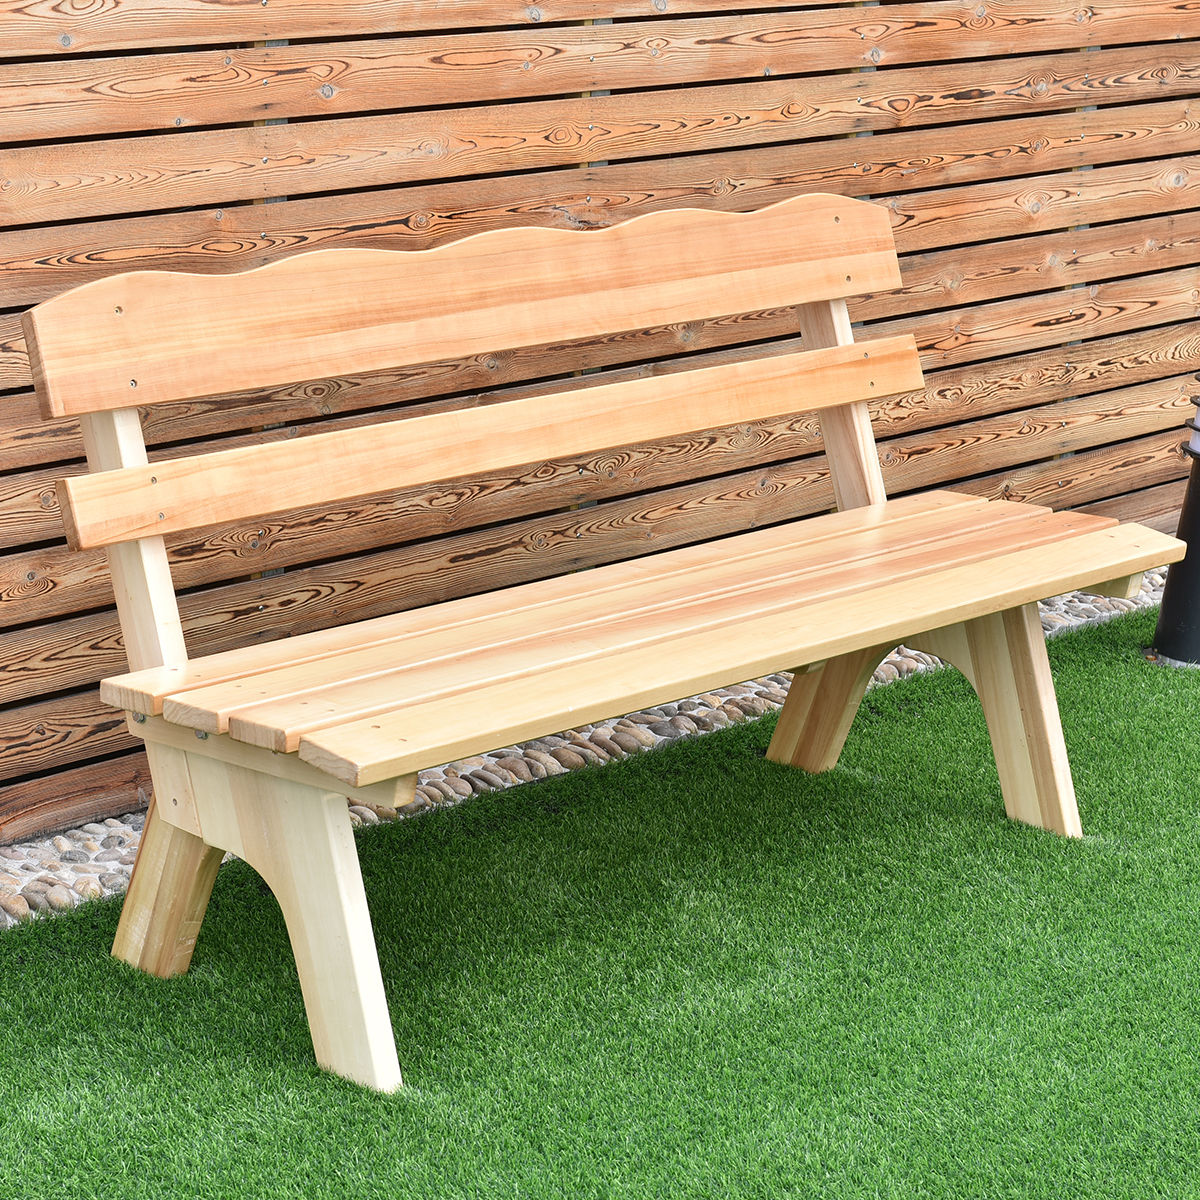 Garden Seats Benches Buy Outdoor Bench And Get Free Shipping On Aliexpress